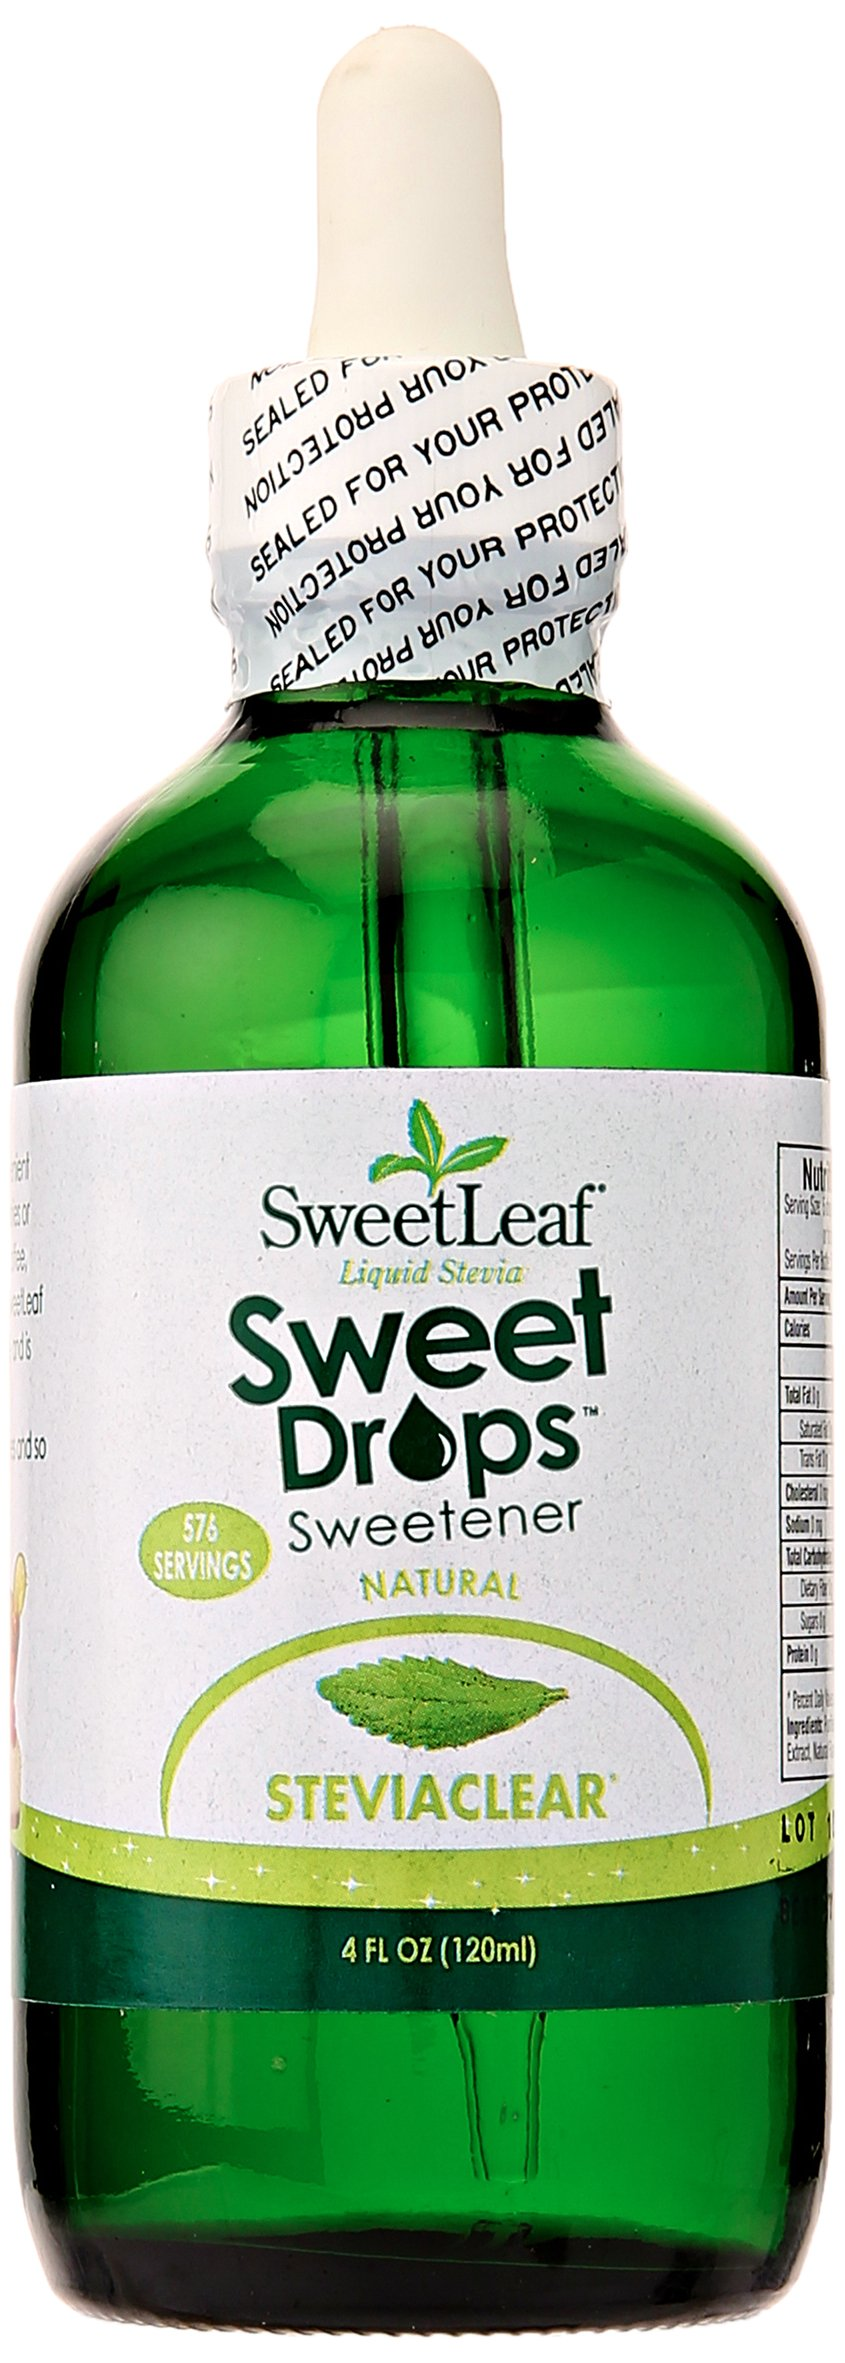 Sweet Drops Sweetleaf Liquid Stevia Sweetener, Steviaclear, 4 Oz by Sweet Drops